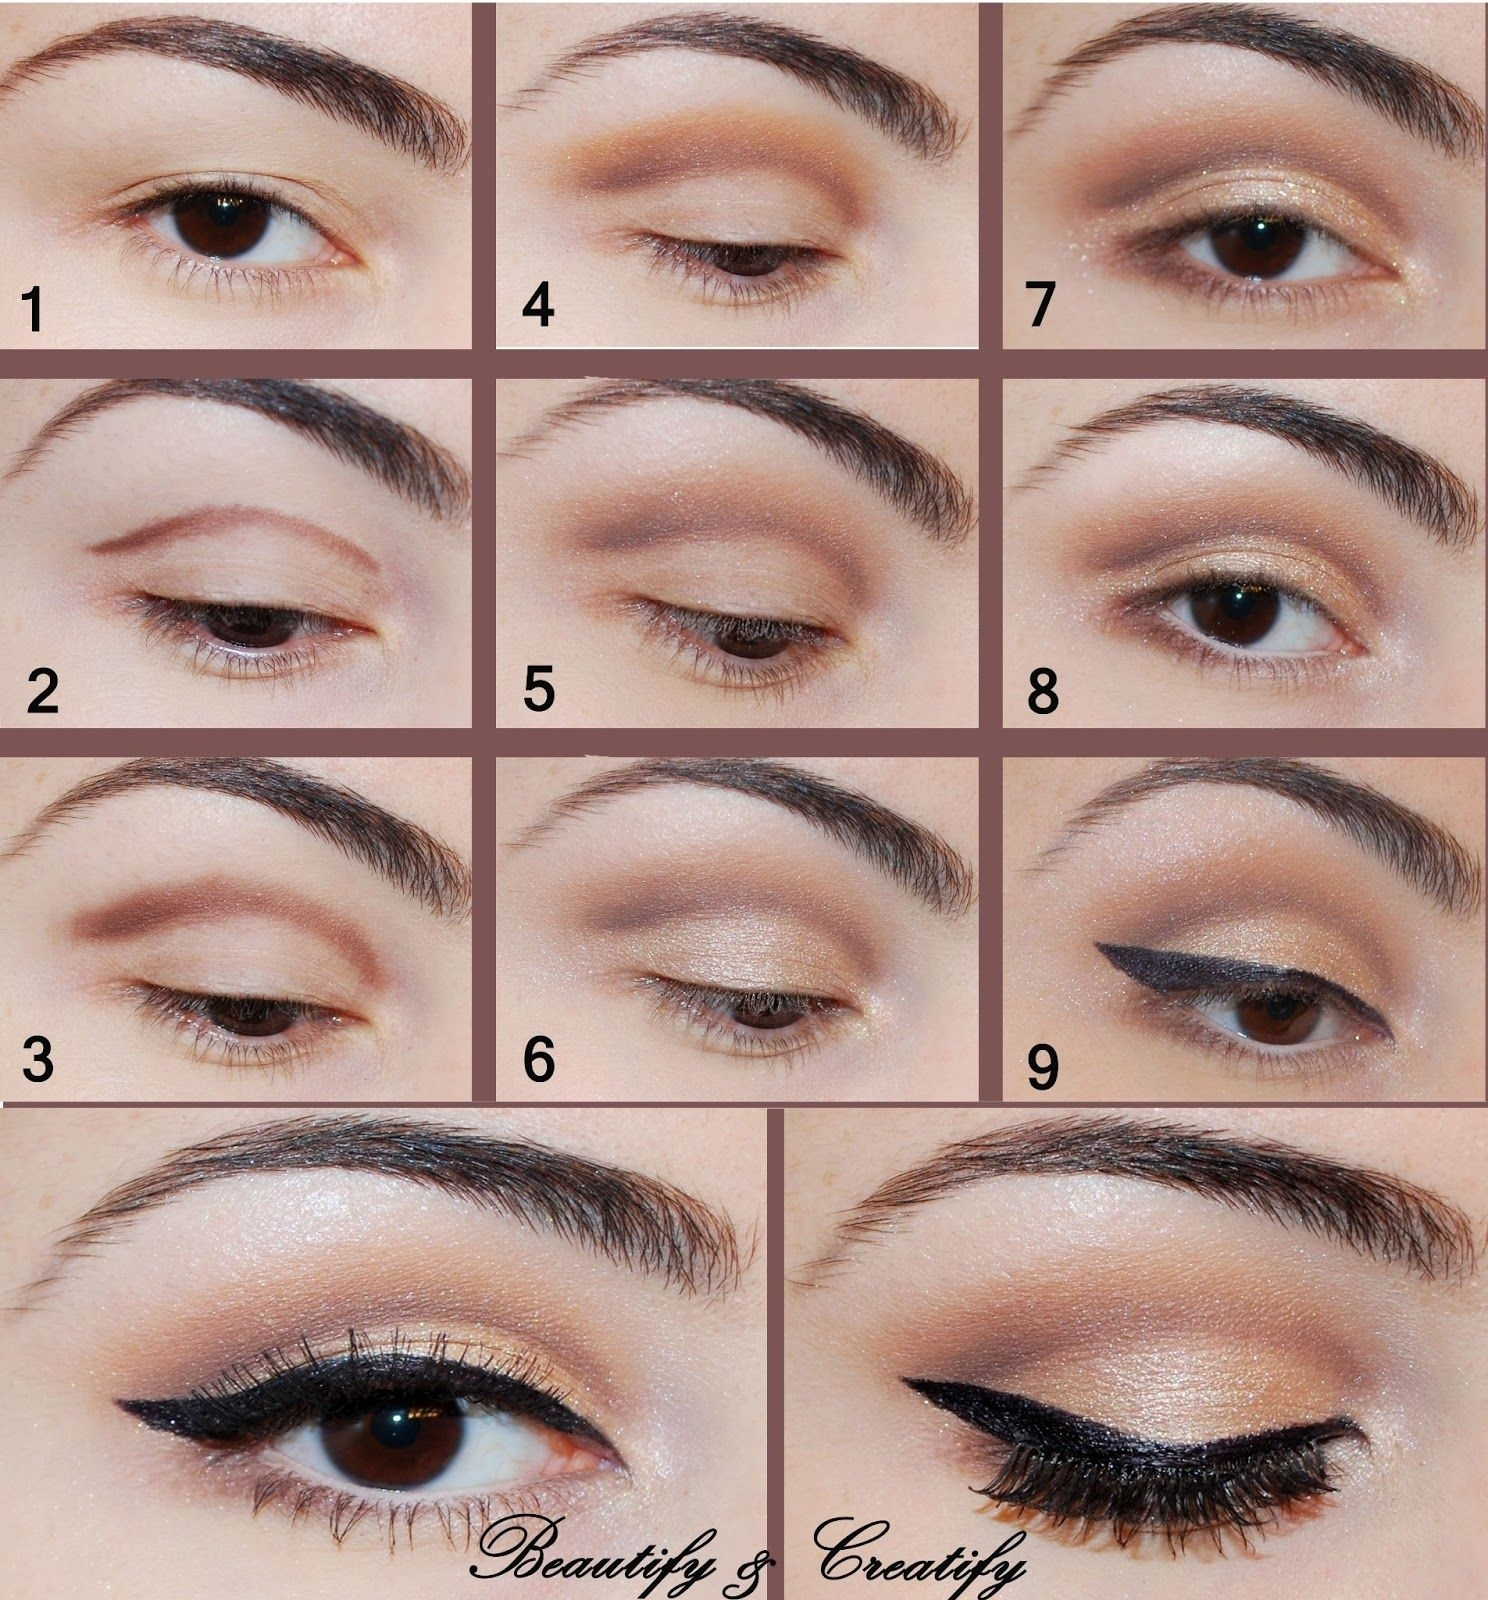 25 Easy Step By Step Makeup Tutorials For Teens | Belleza General regarding Natural Makeup Tutorial Step By Step Pictures